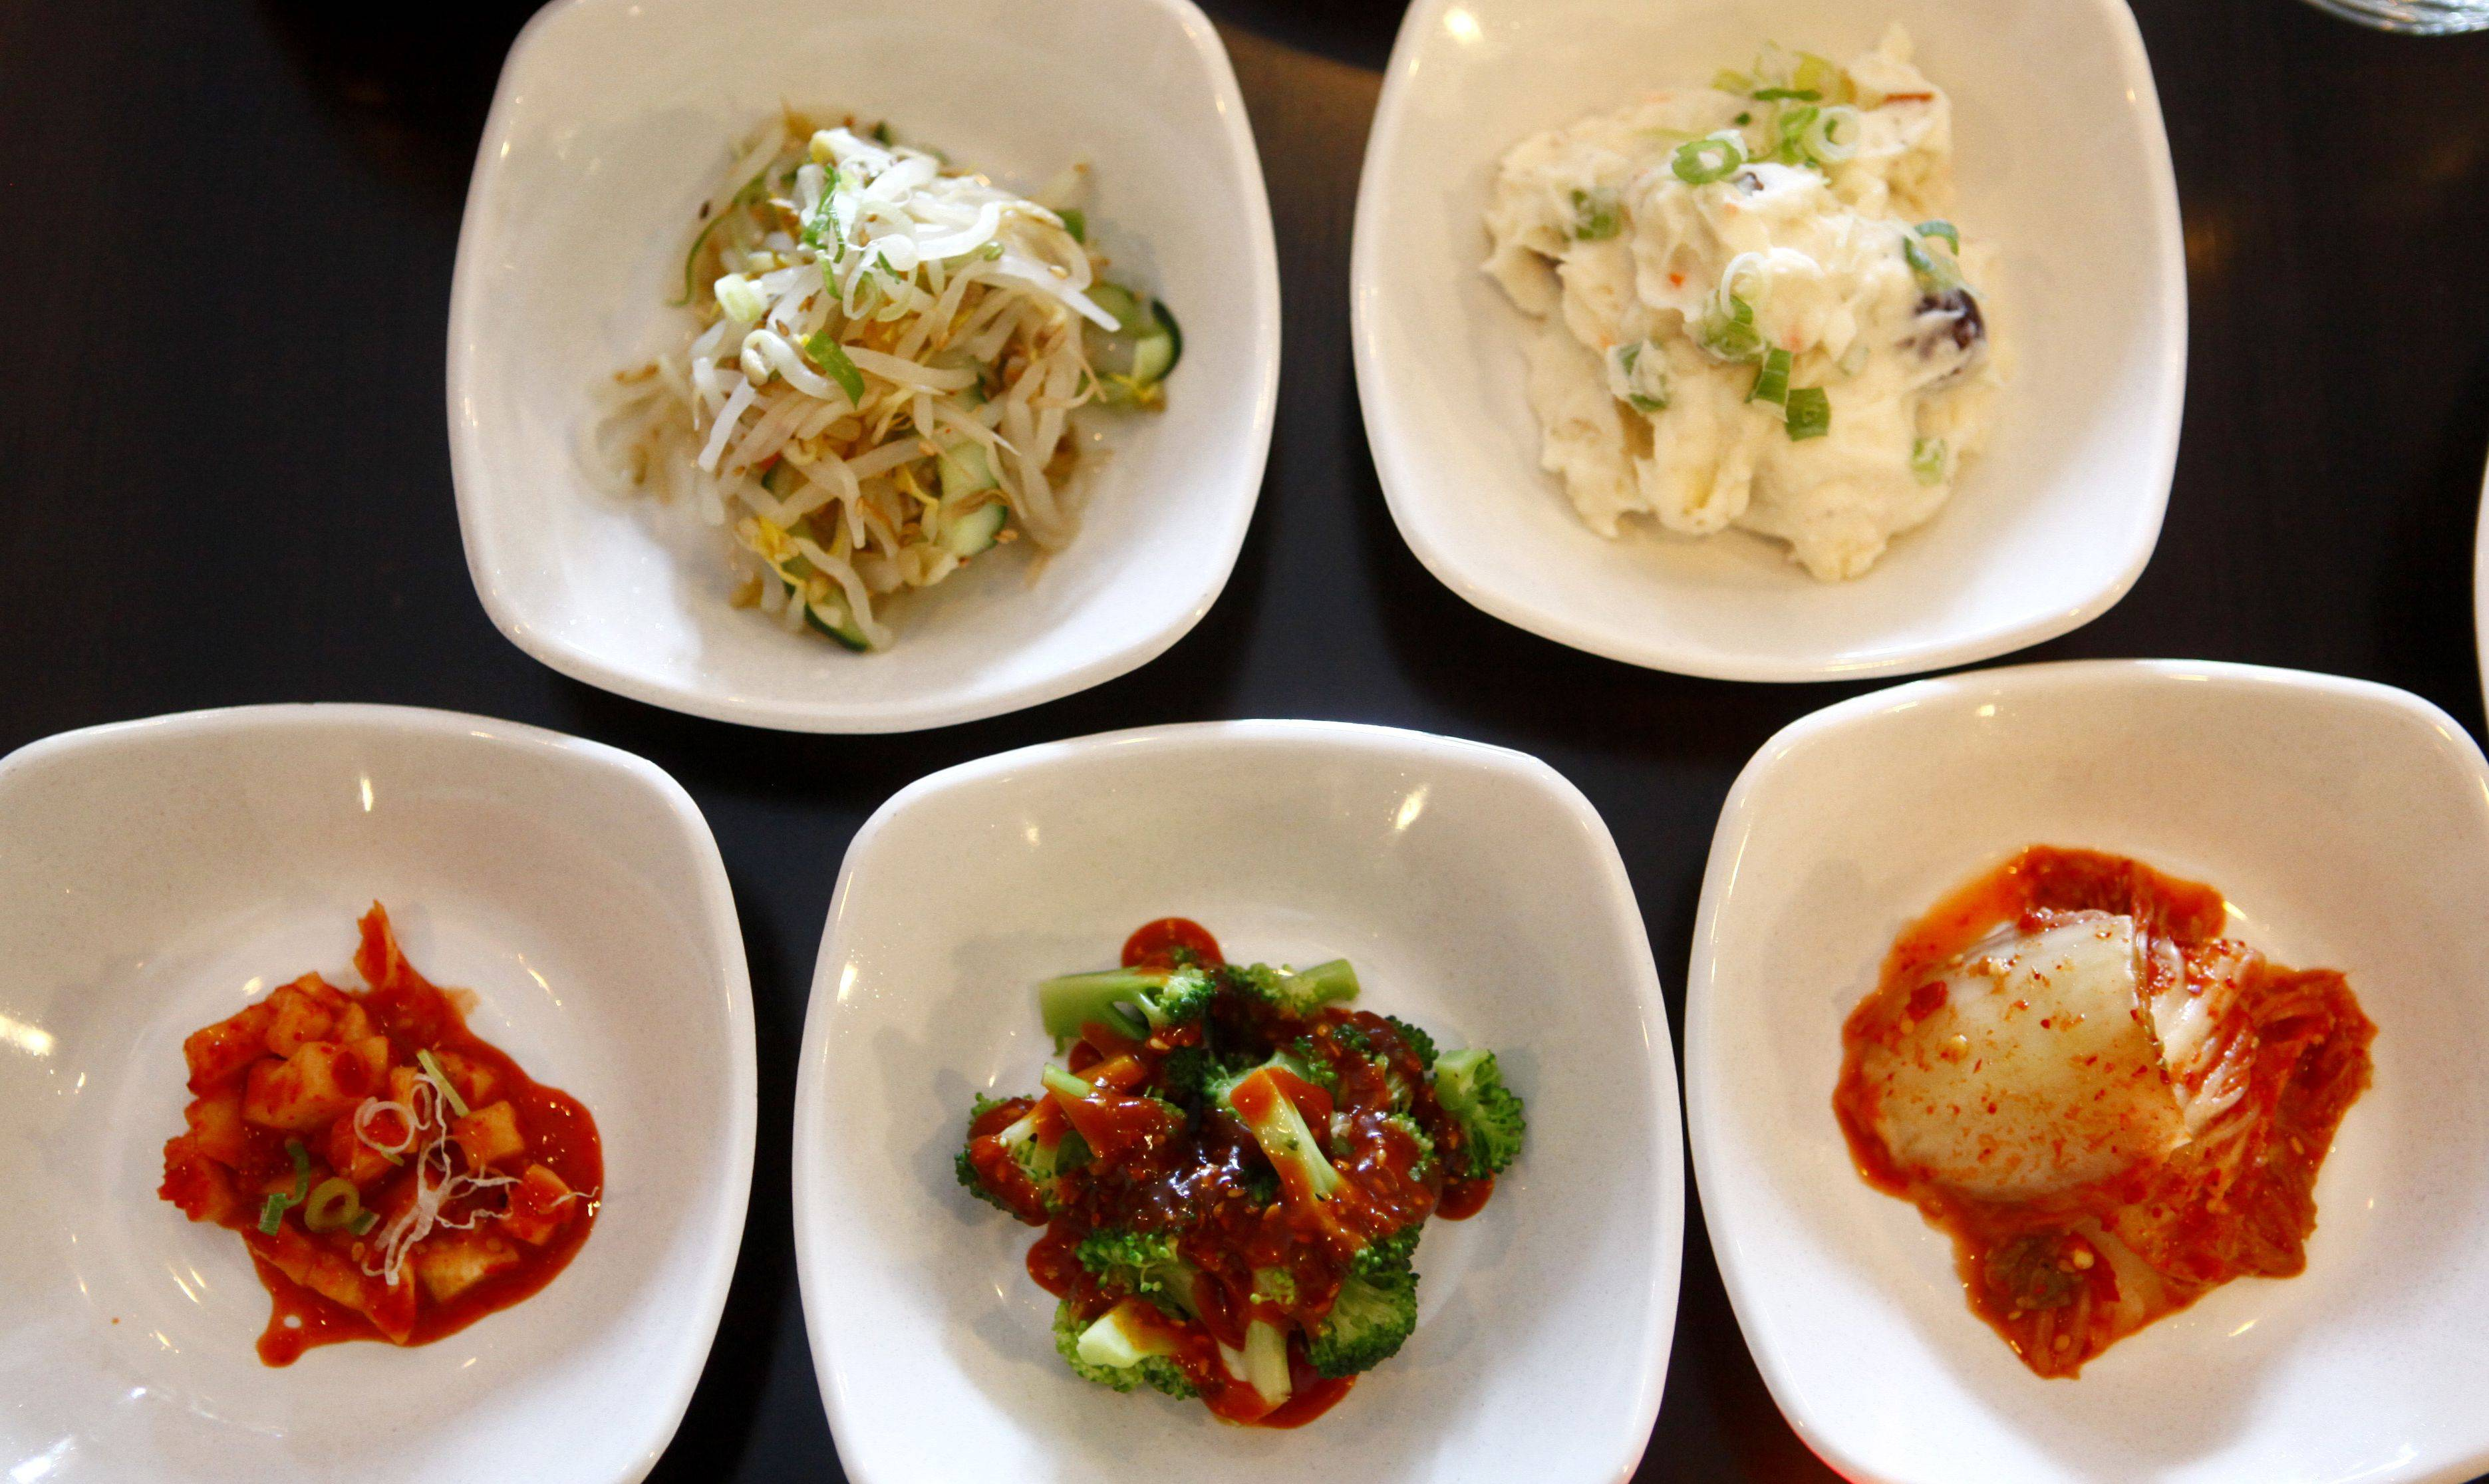 Ttowa adds special touches to traditional Korean dishes.